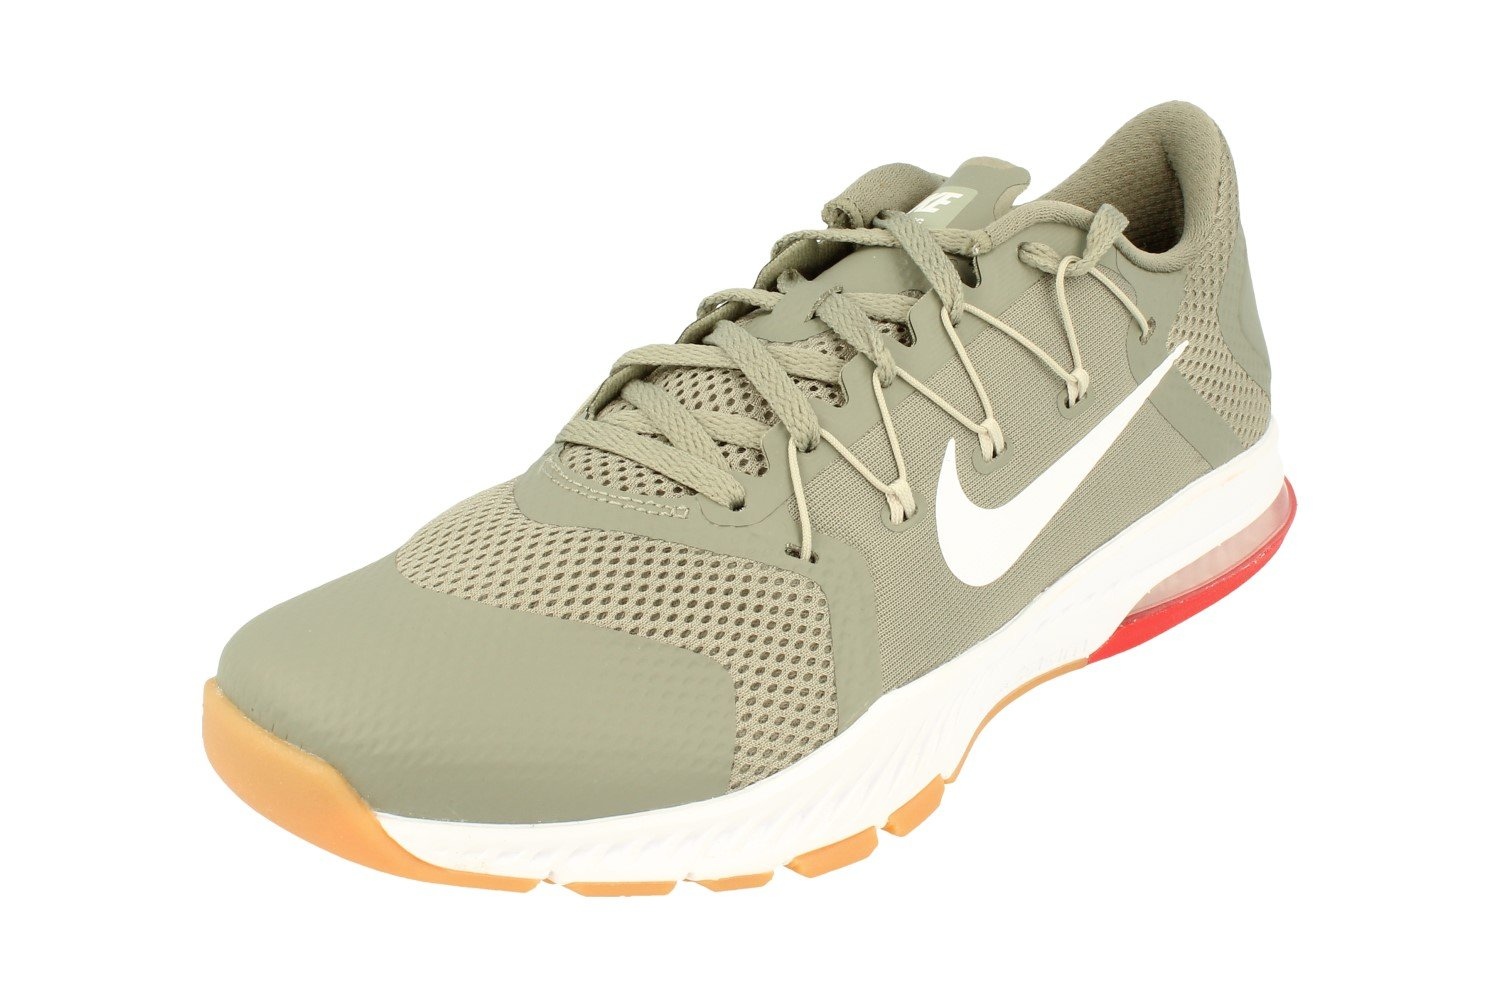 NIKE Air Zoom Train Complete Mens Running Trainers 882119 Sneakers Shoes B01MU32AP2 11.5 D(M) US|Dark Stucco White Pale Grey 008